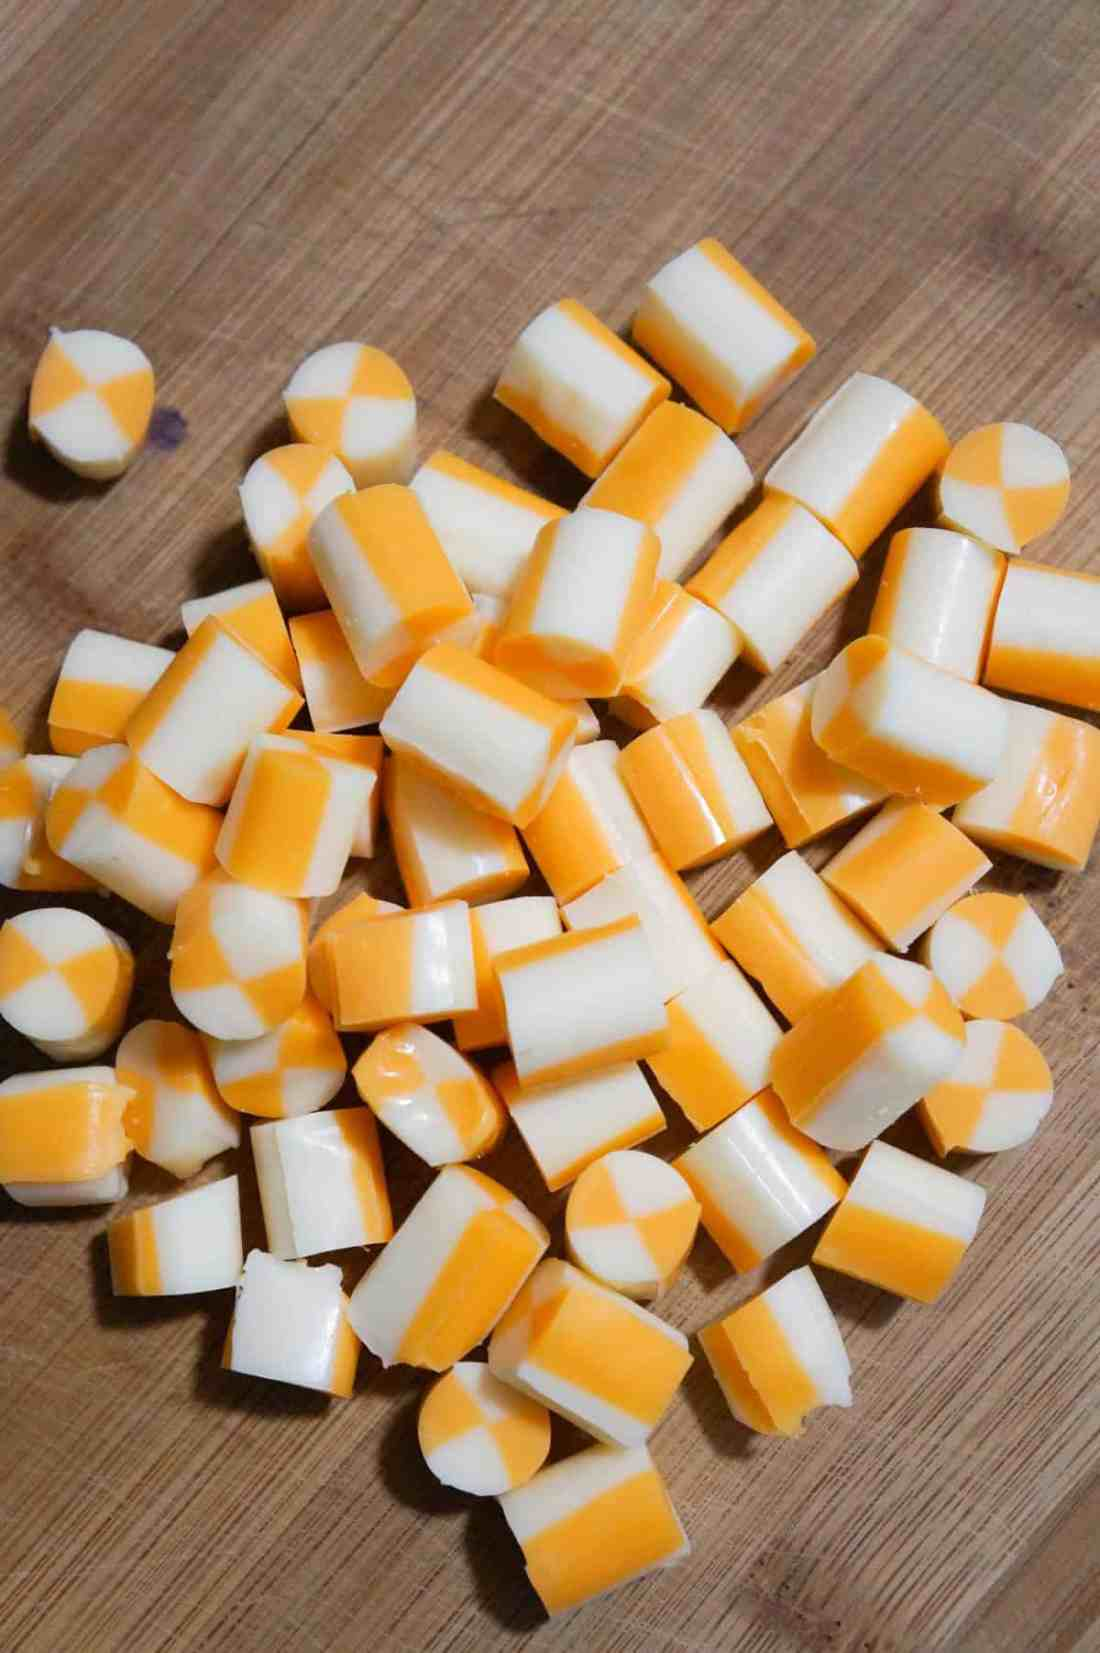 marble string cheese cut into cubes on a cutting board